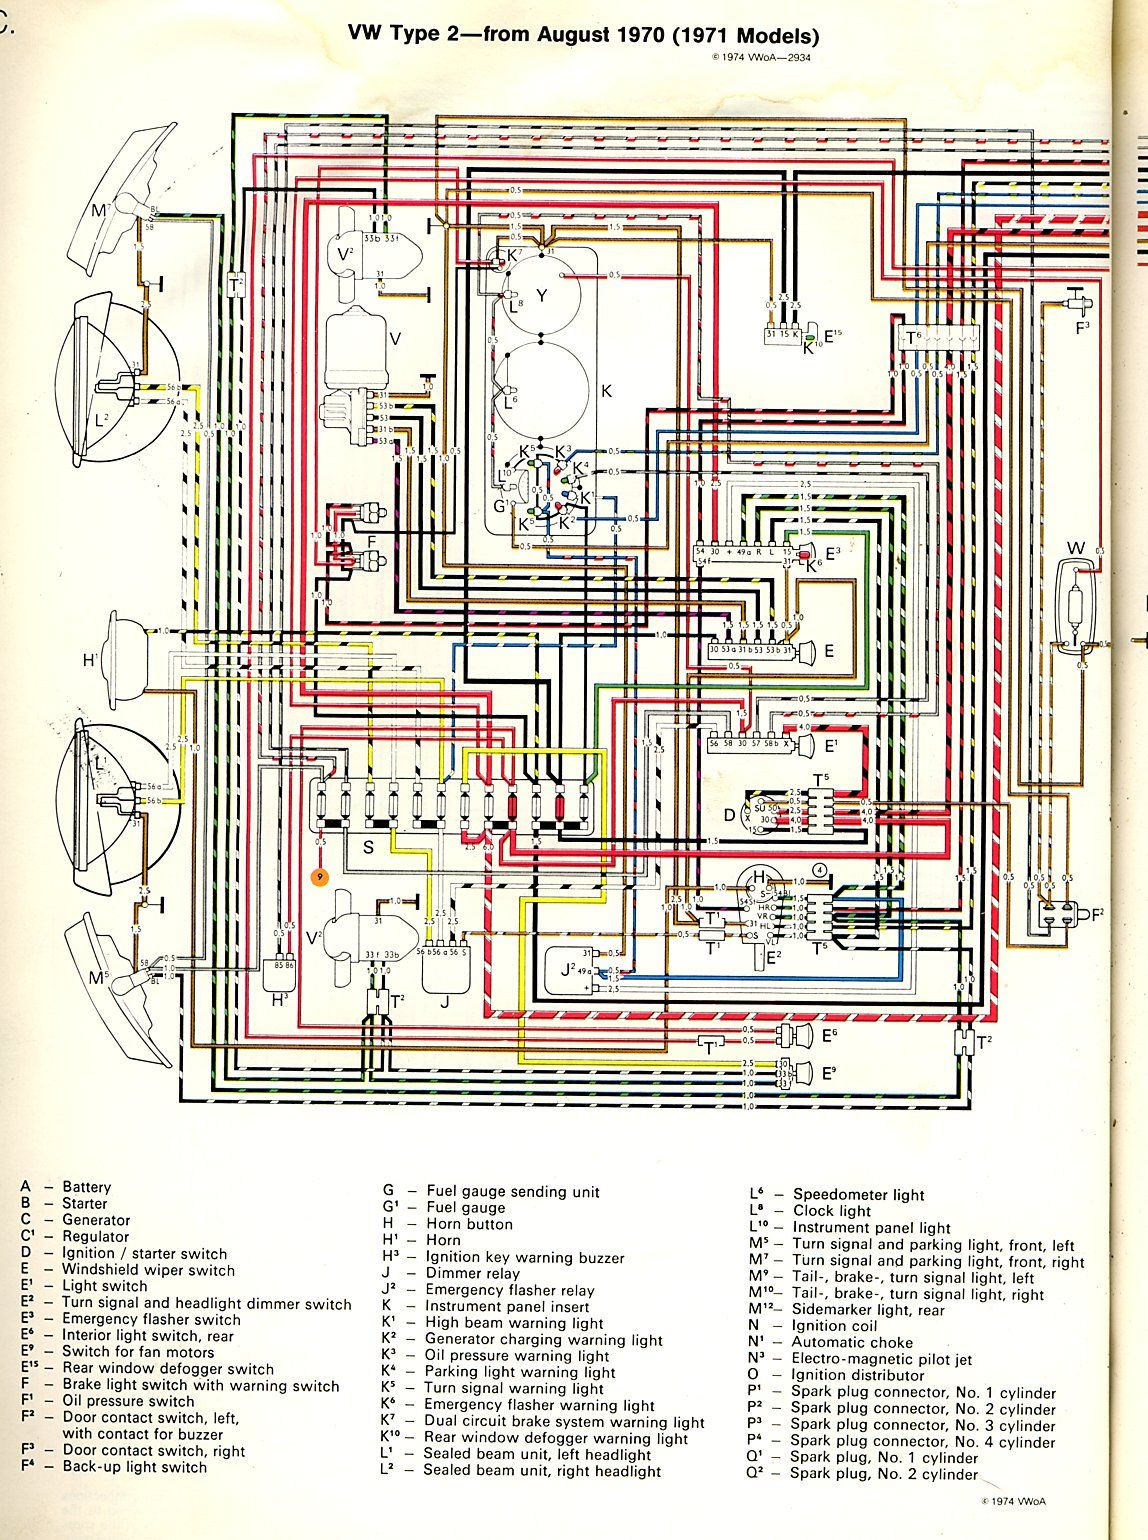 Vw T4 Brake Light Wiring Diagram Best Library Diagramquot On The Left And Of Six Way 4 Pole Rotary 1971 Bus Thegoldenbug Com Stuff To Try Rh Pinterest Camper